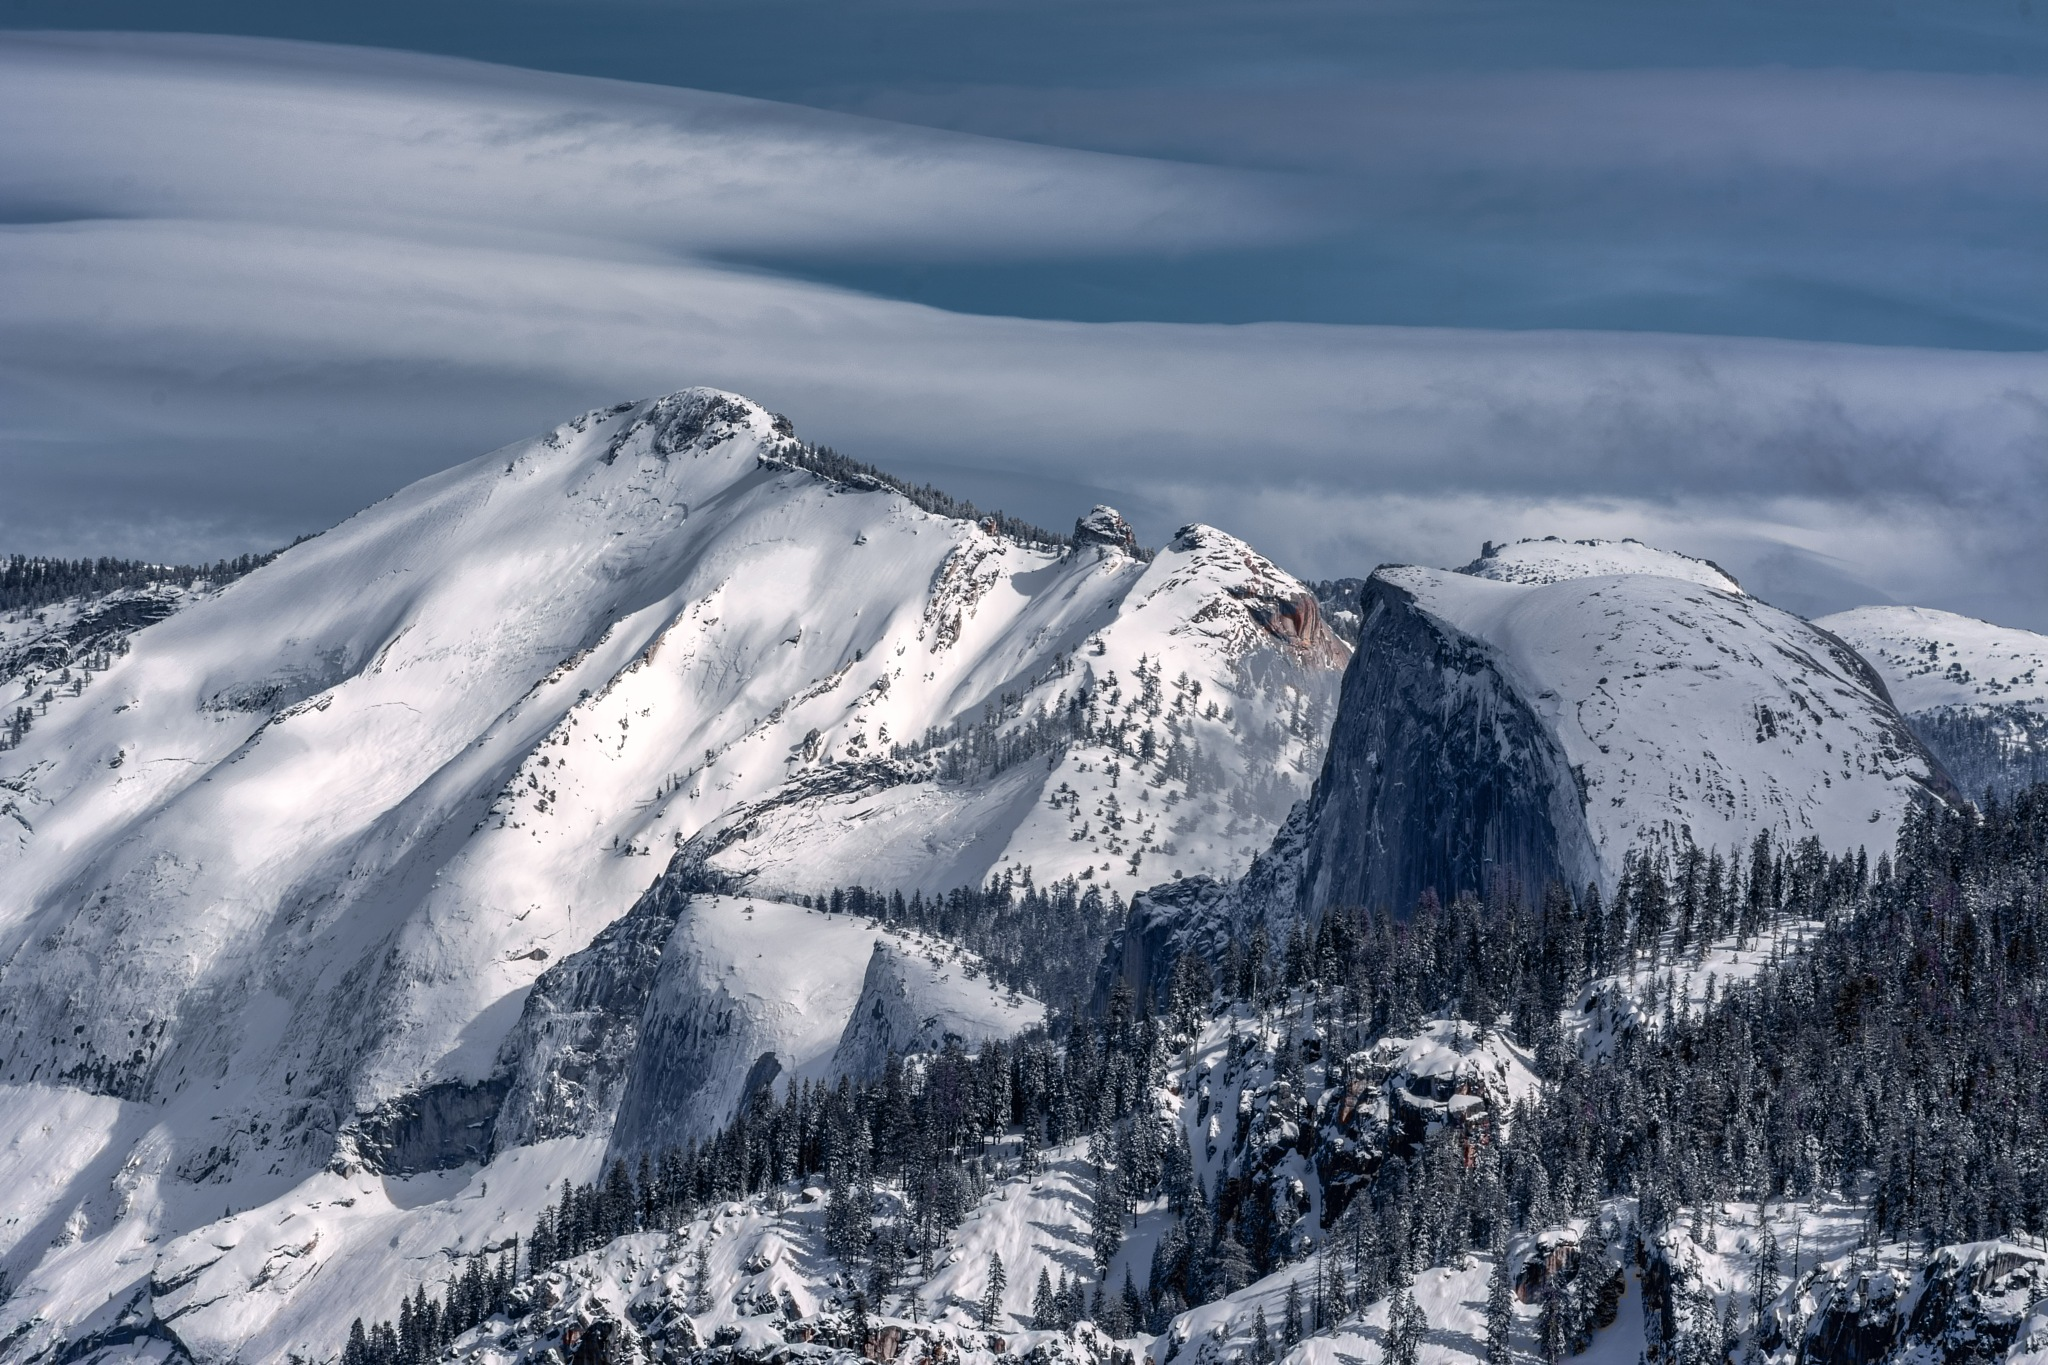 Half Dome and Clouds Rest in Winter, Yosemite by Michael Sheltzer